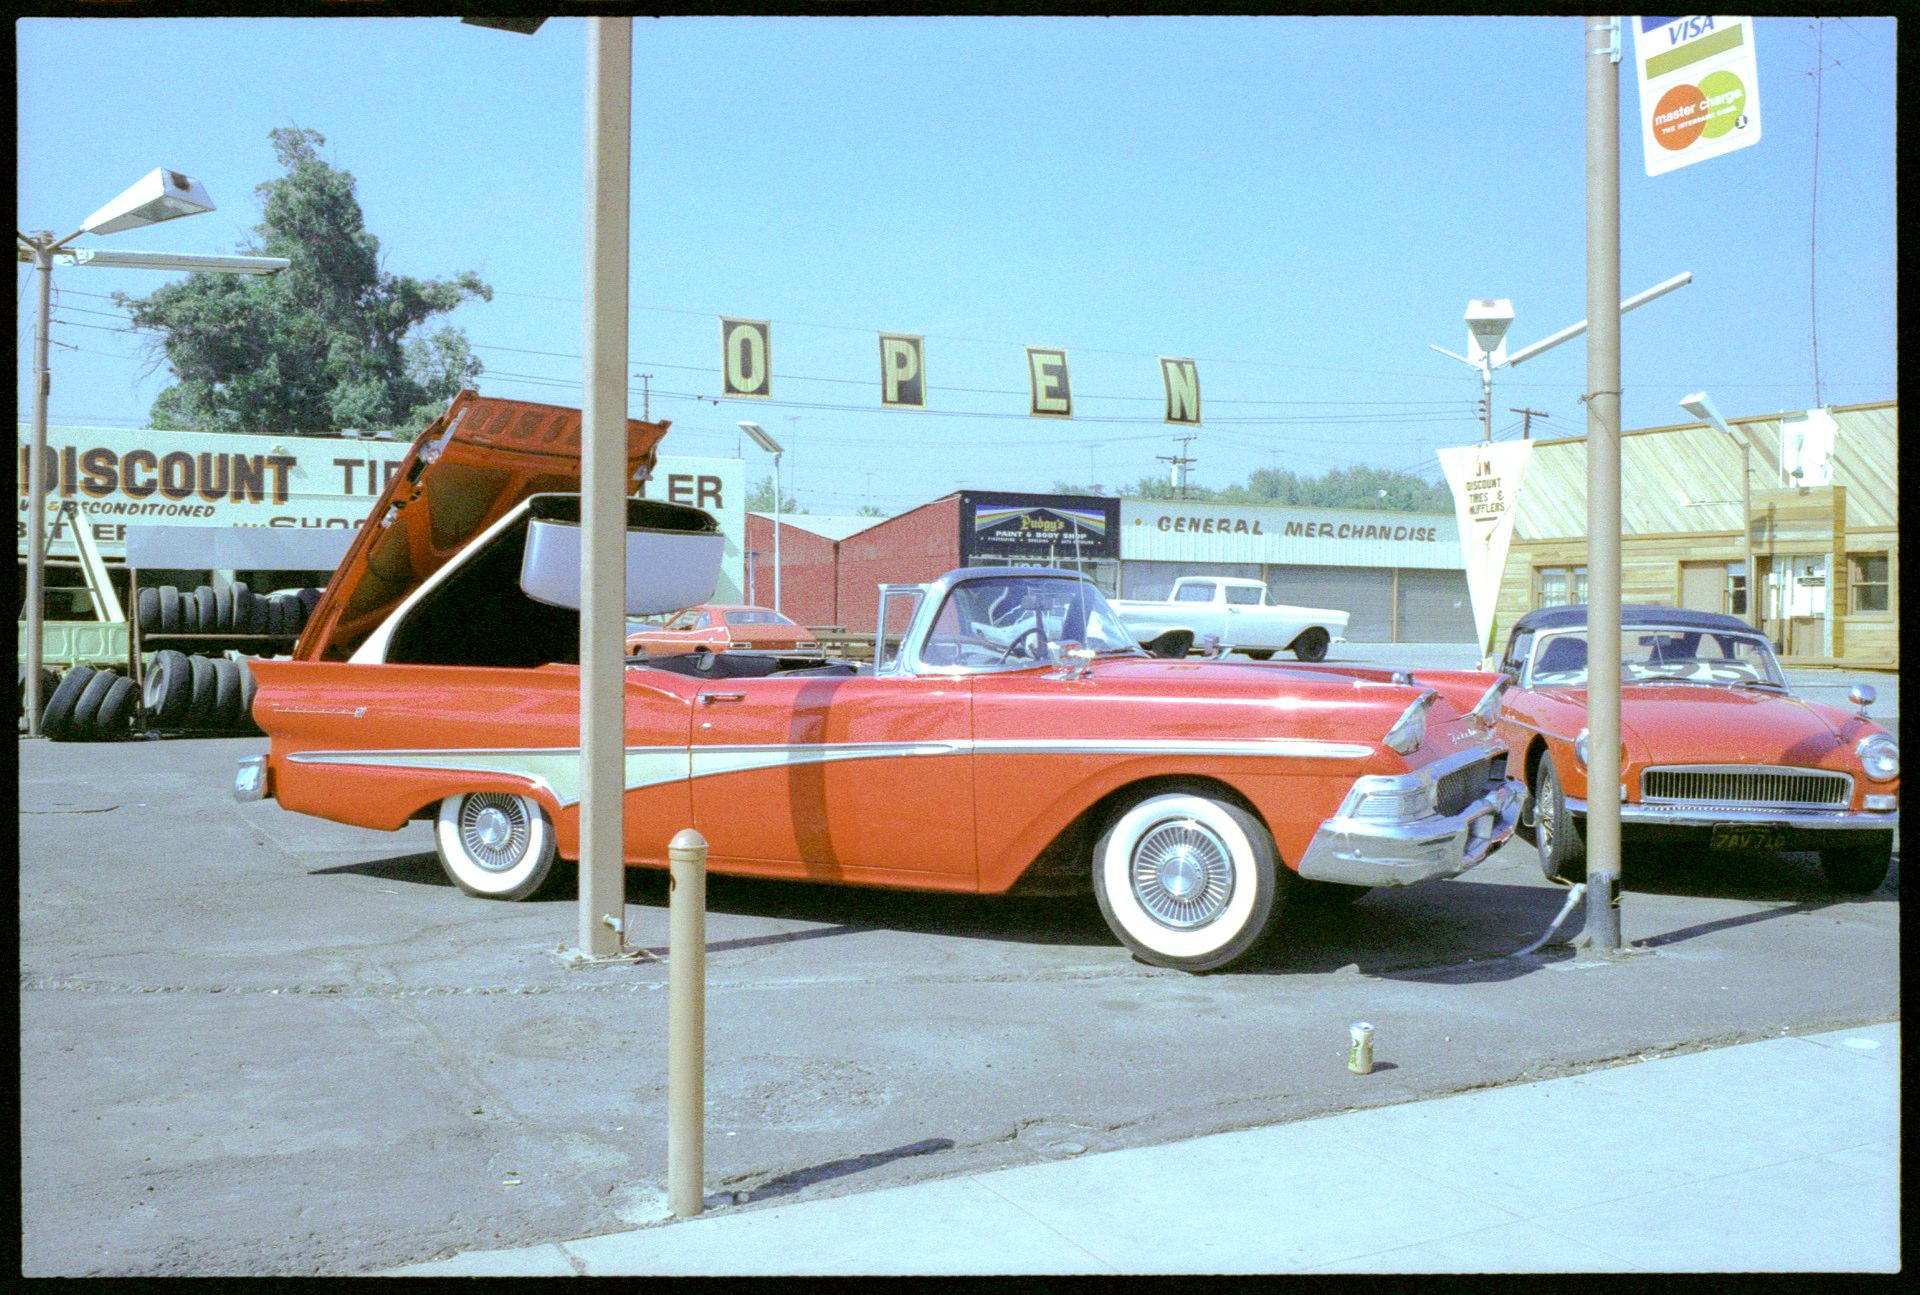 Lewis deSoto, E Street car lot, San Bernardino, California, 1979, Archival pigment print, 13 x 20 inches, Courtesy of the artist.